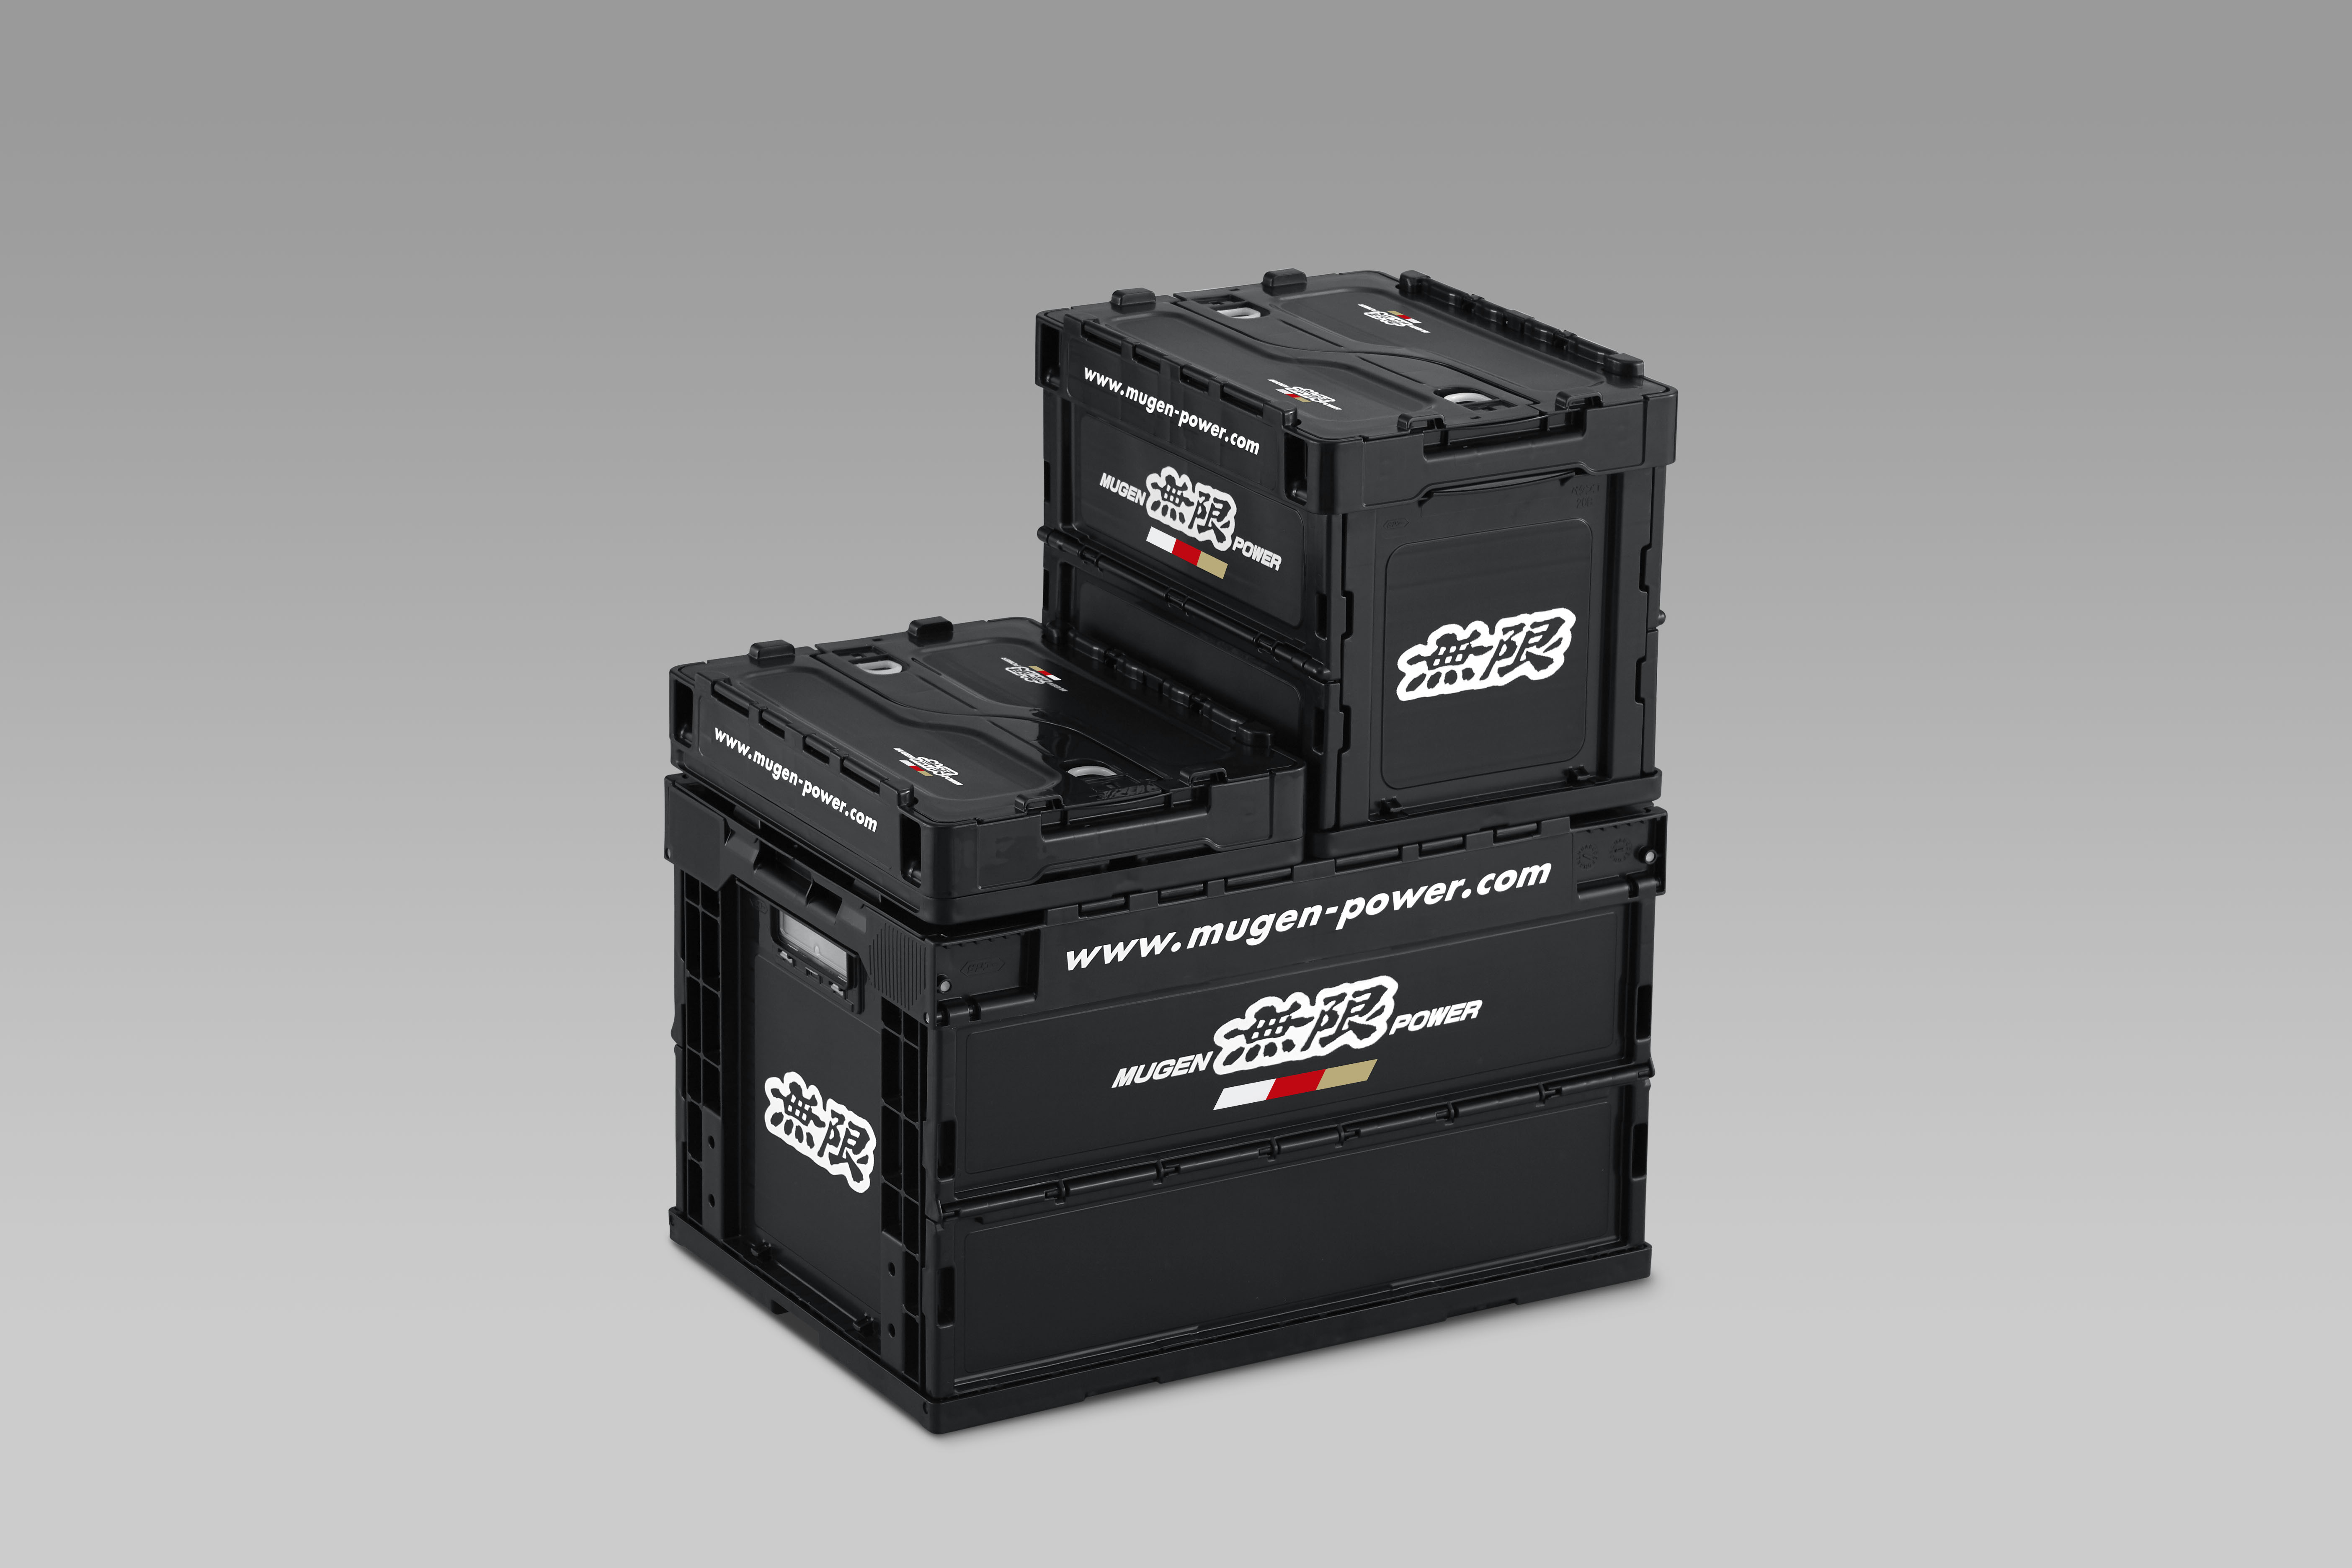 Exceptionnel Mugen Folding Storage Tote Small